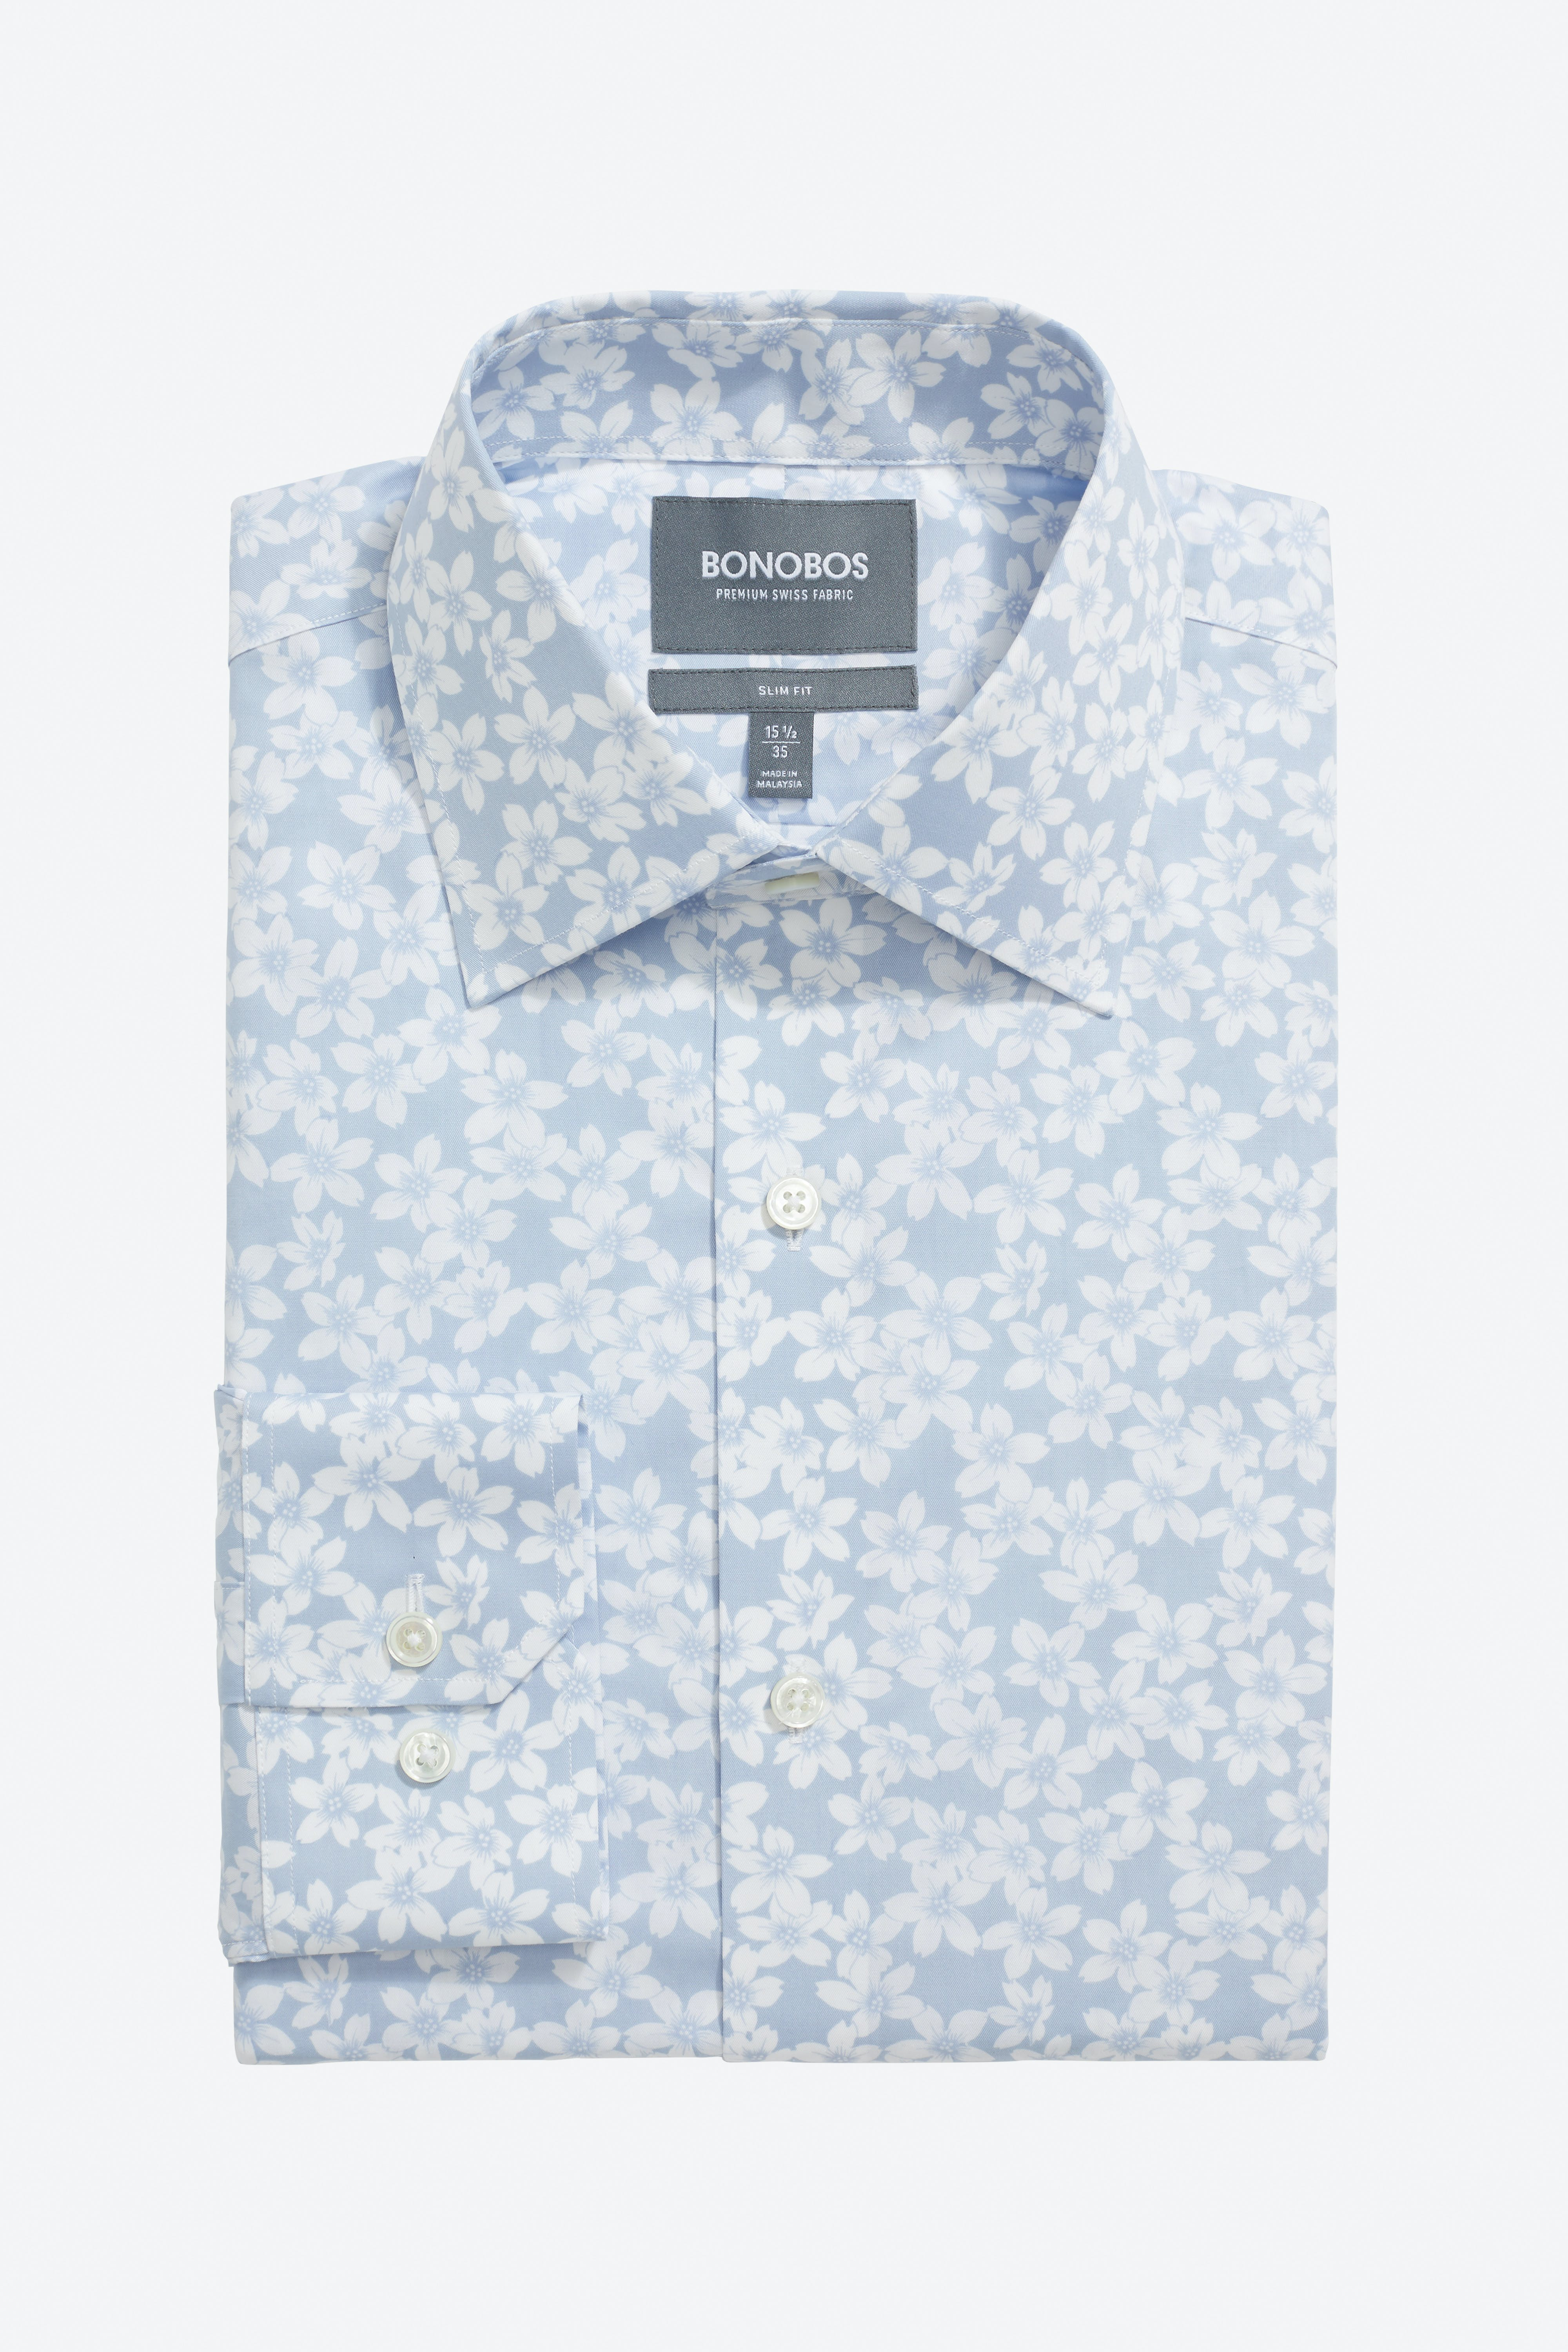 Swiss Performance Dress Shirt